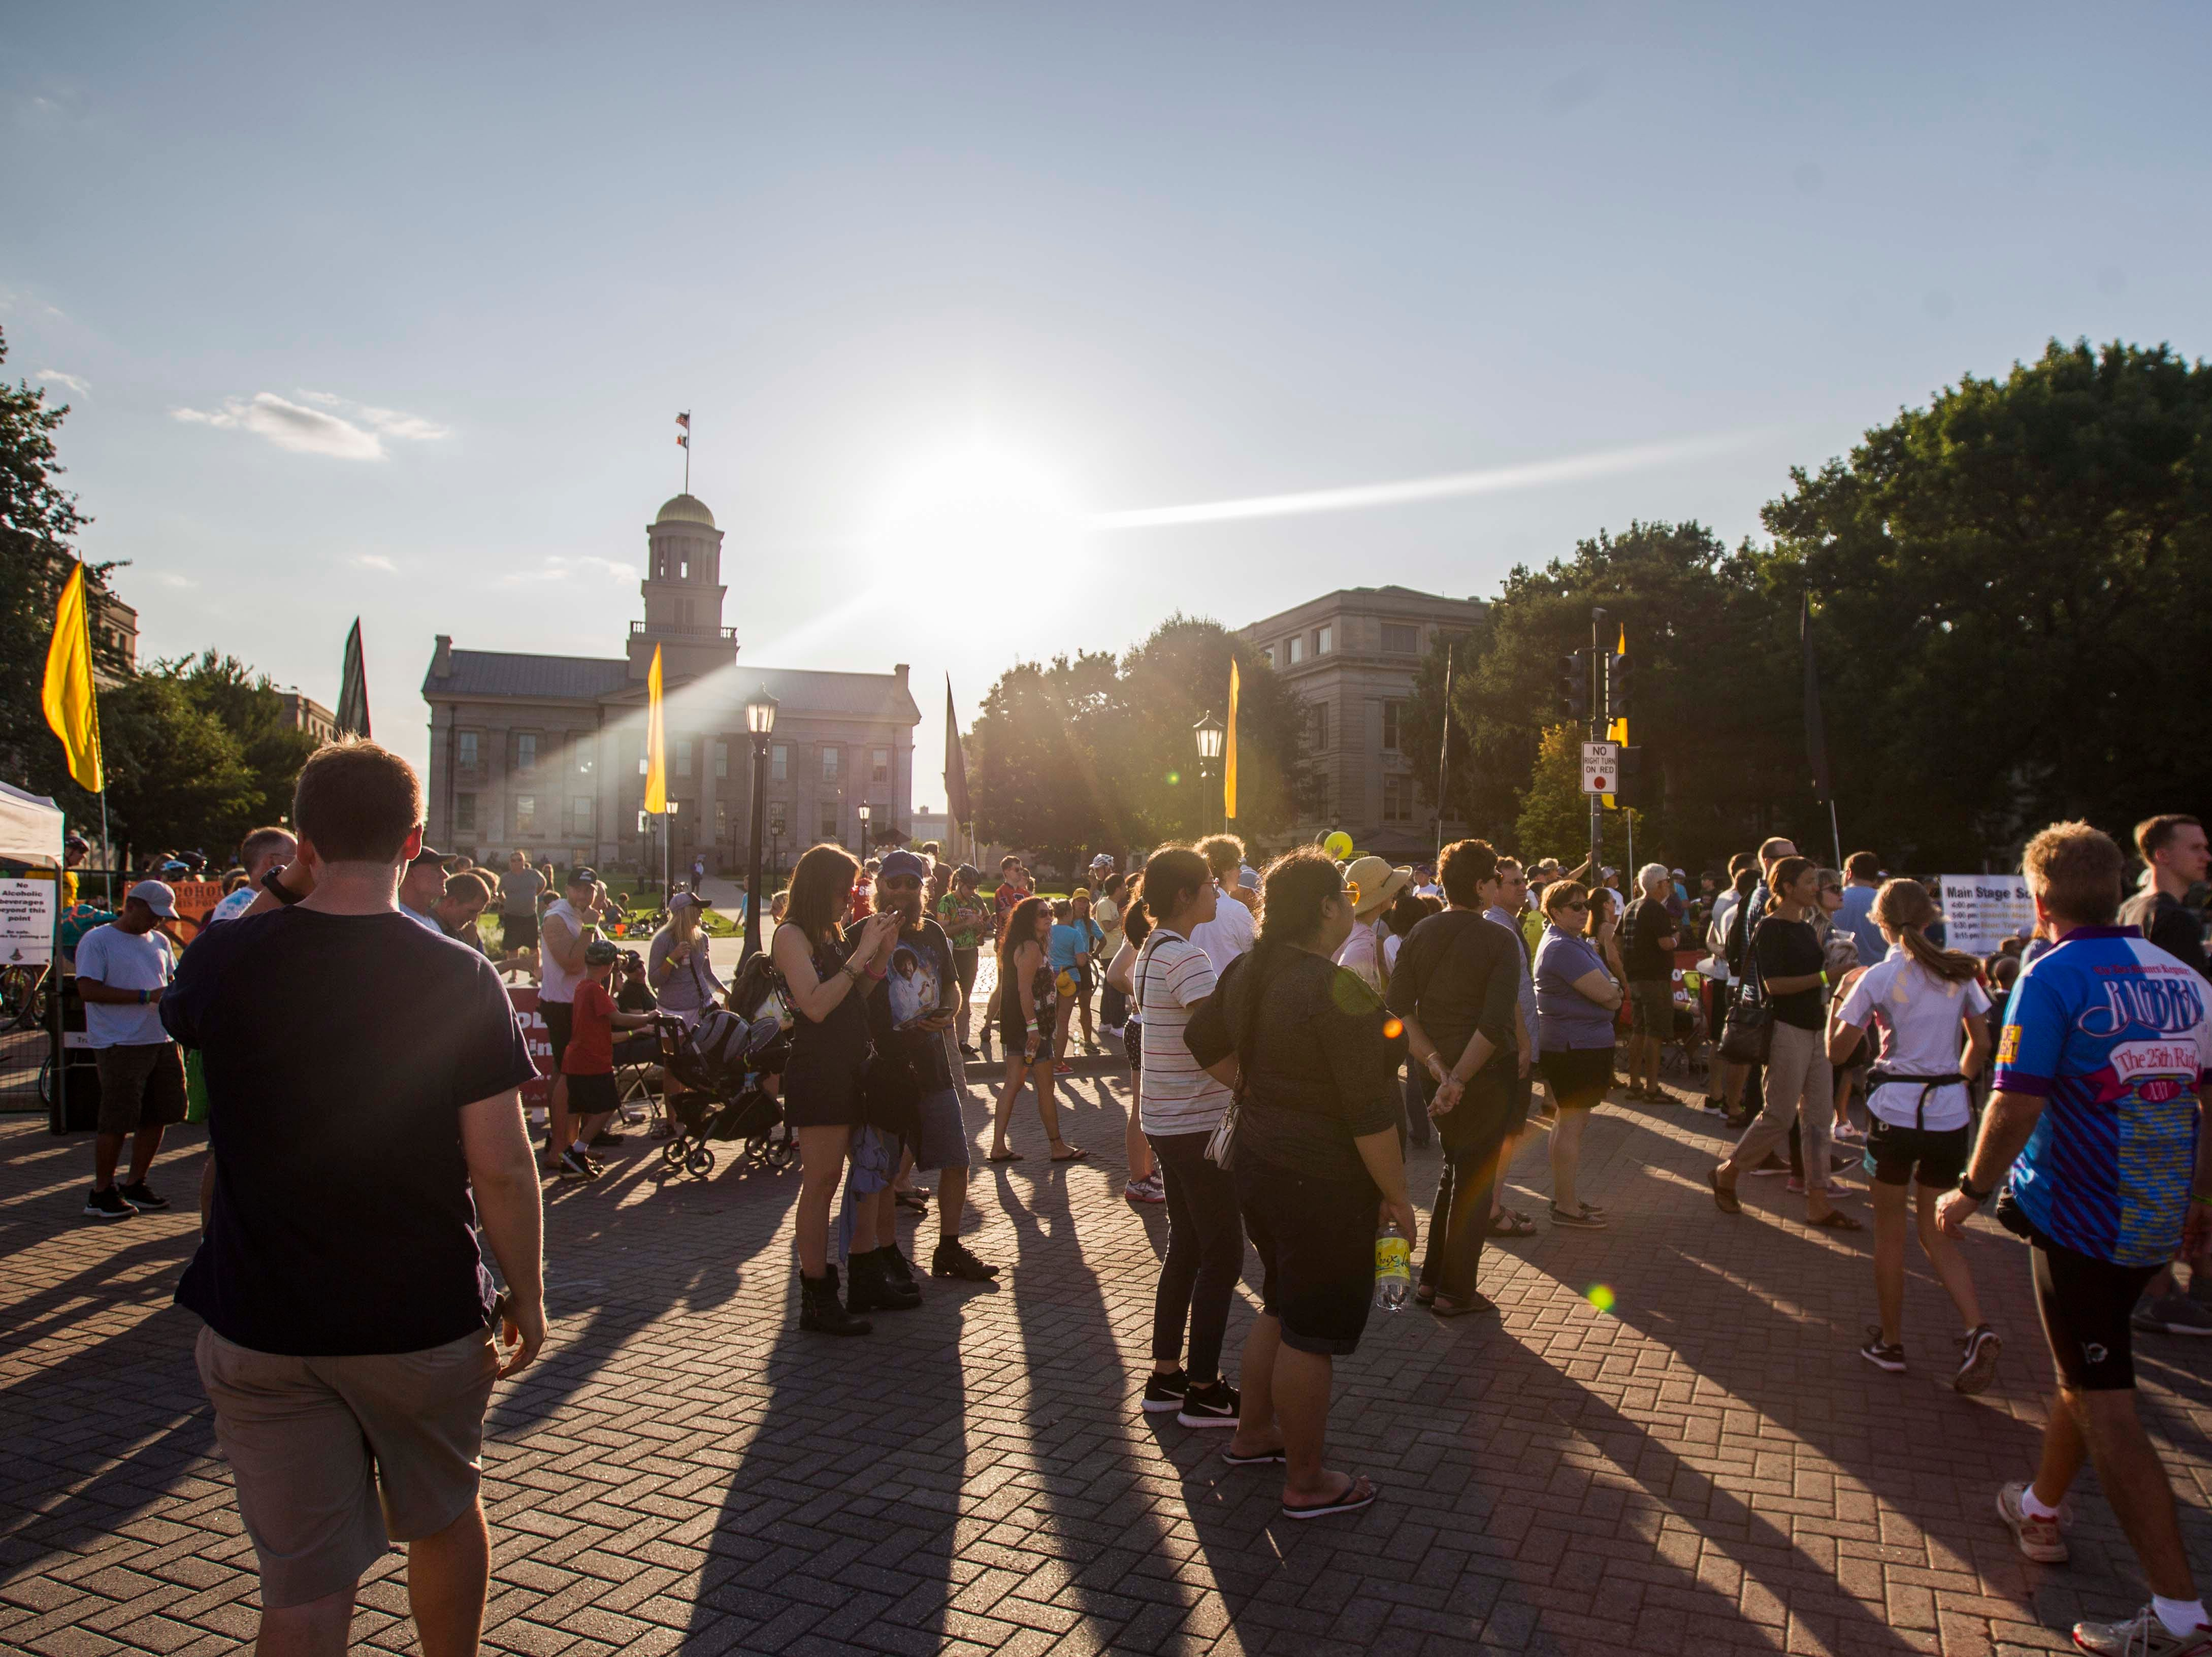 RAGBRAI Iowa City: Take a look back at the overnight stop in photos and video